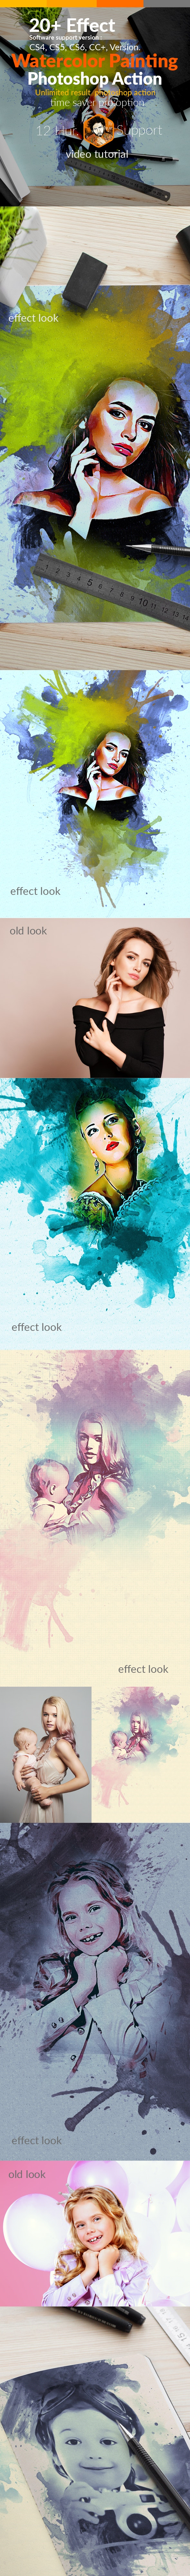 Watercolor Painting Photoshop Action - Actions Photoshop